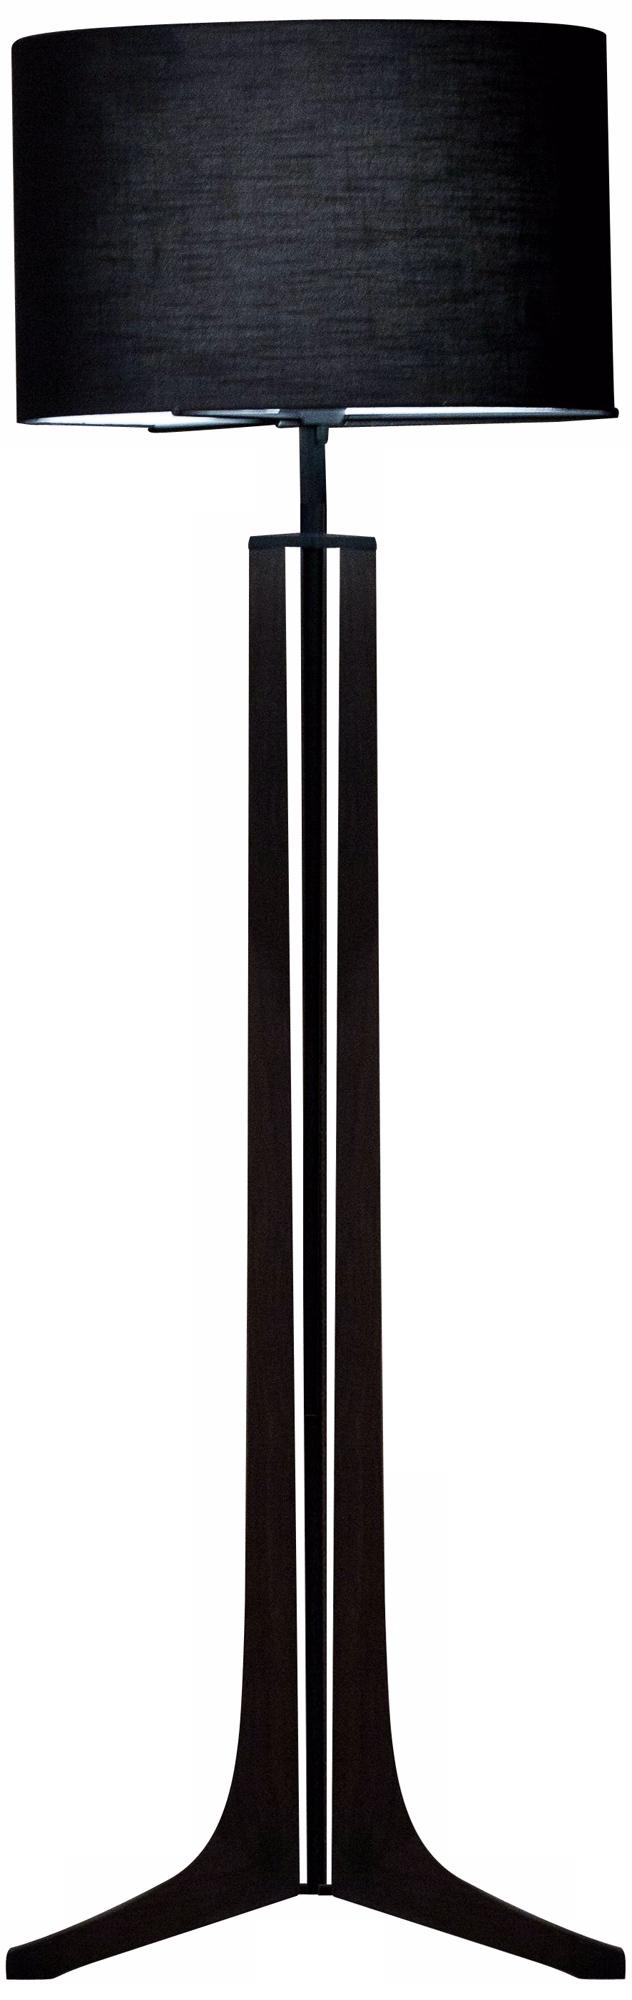 Cerno Forma Black Walnut LED Floor Lamp with Black Shade (X6765)